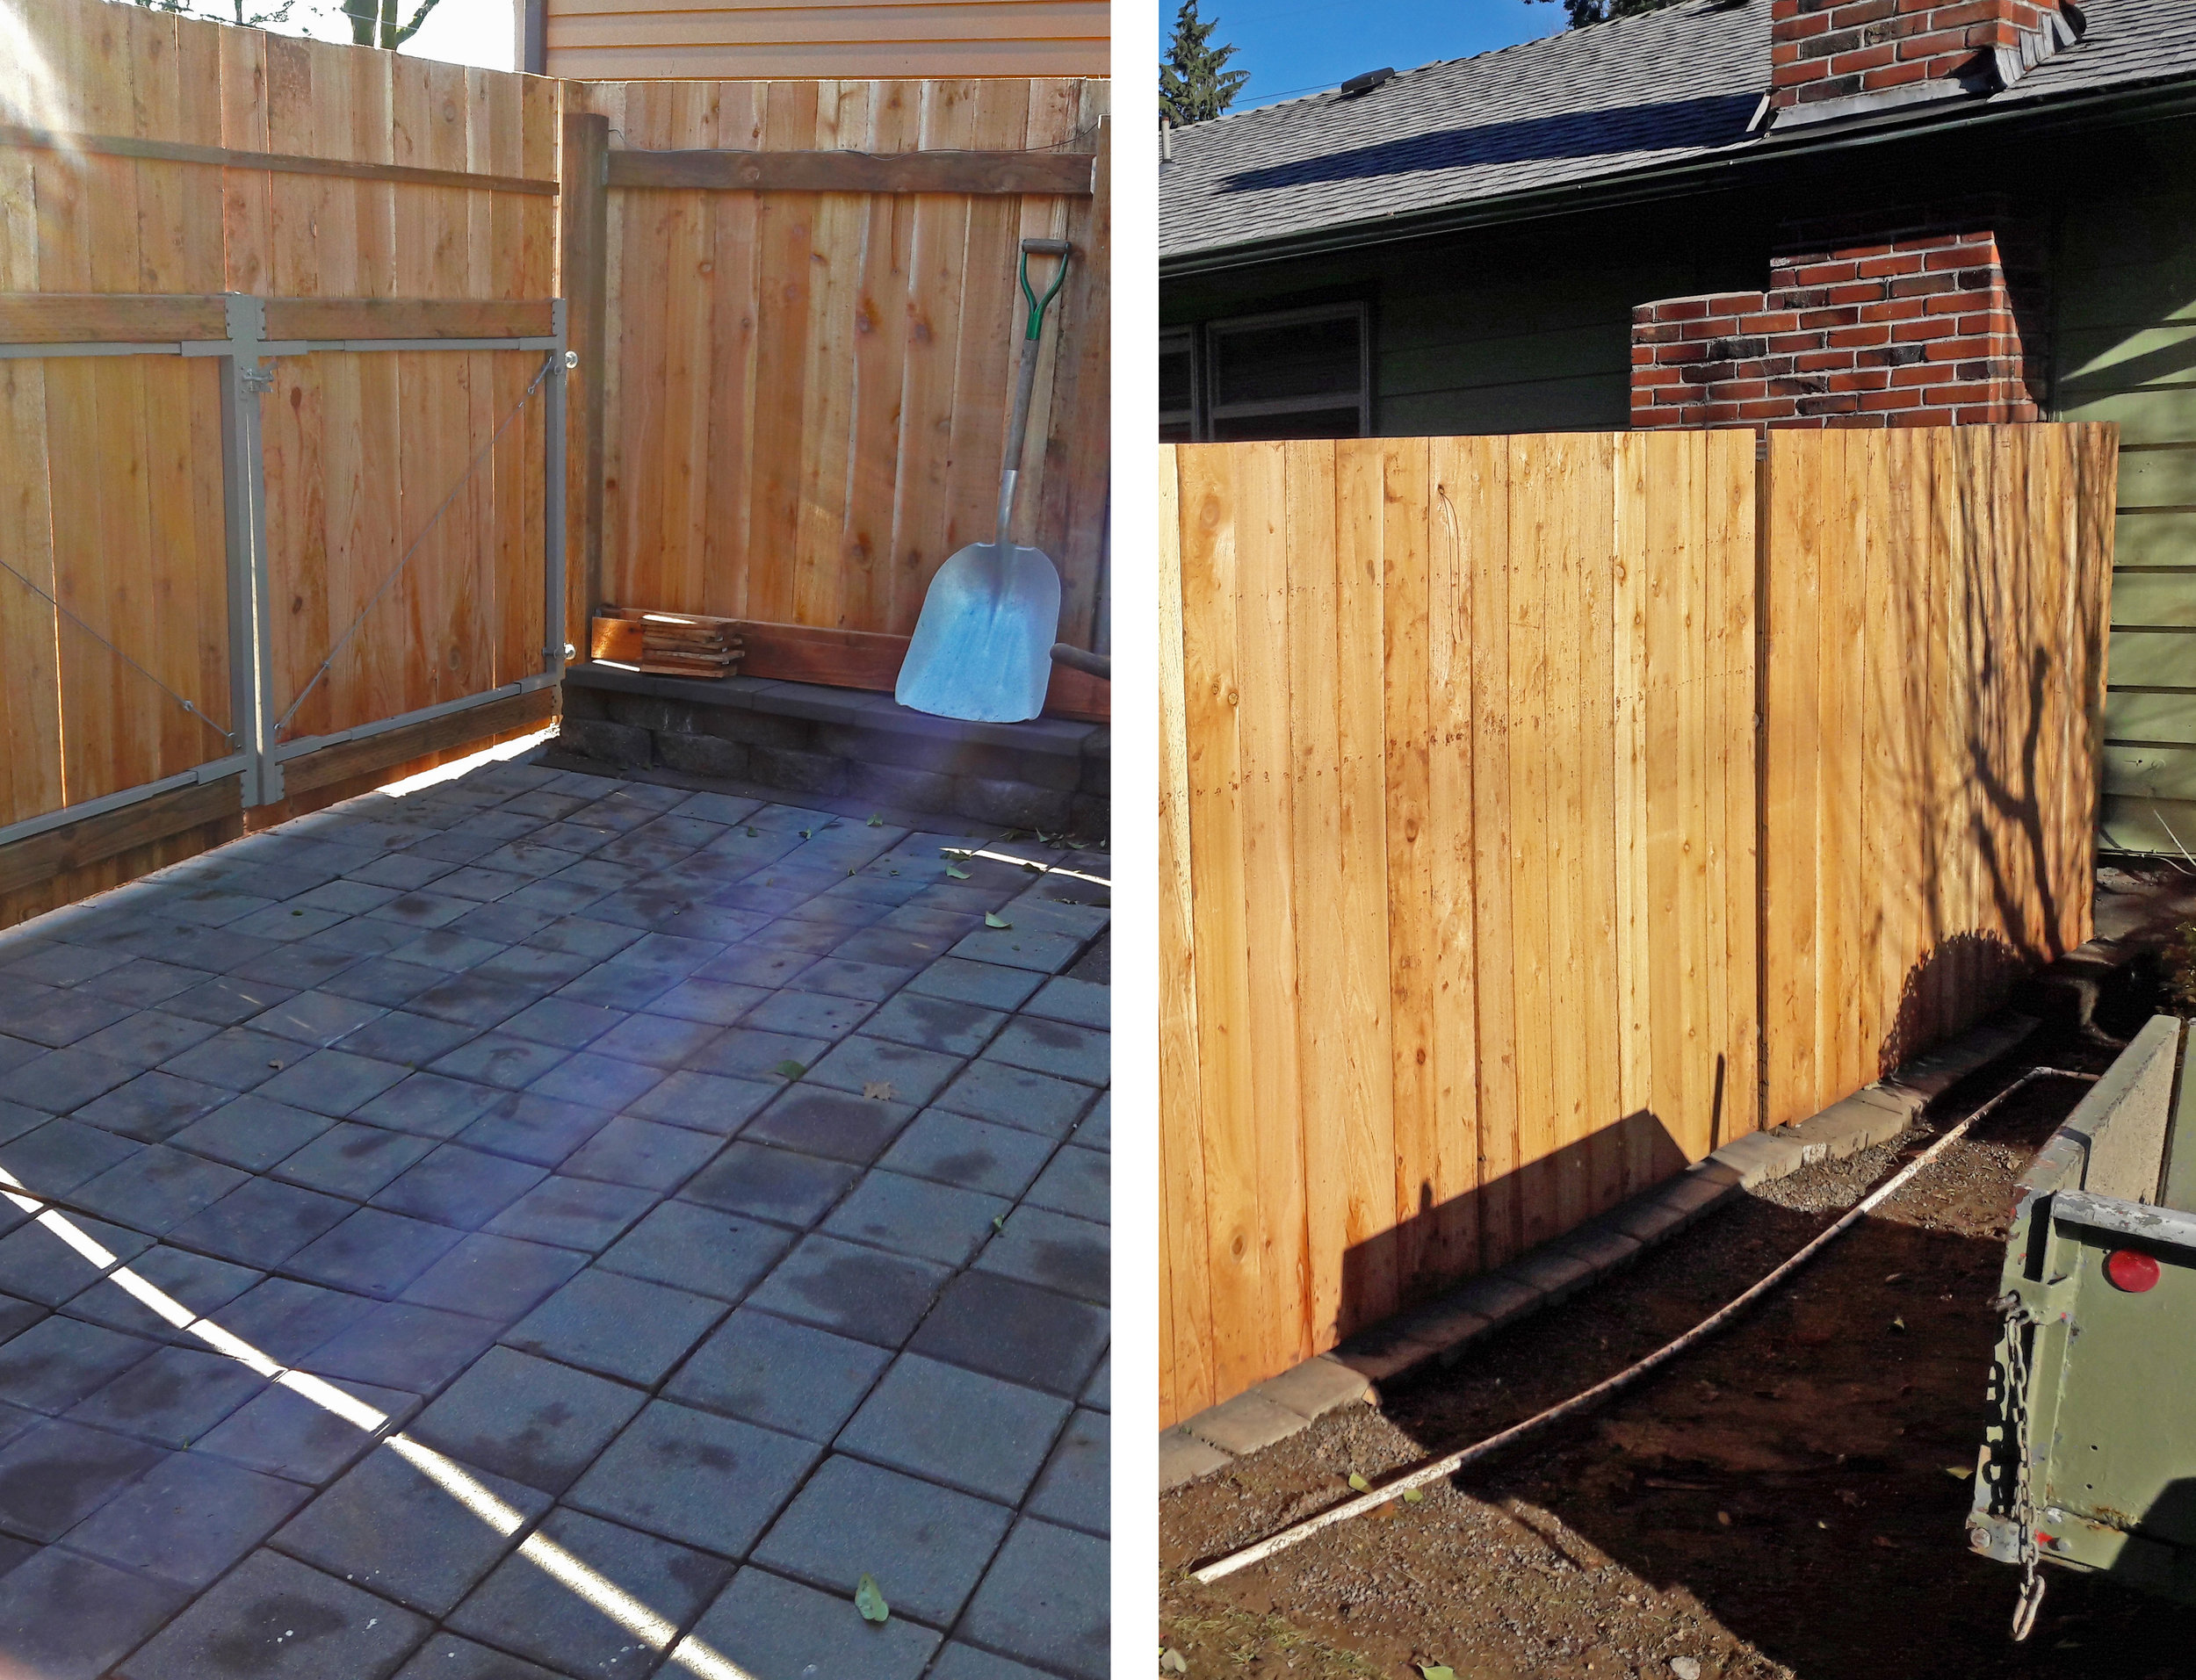 Fence Re-build: After